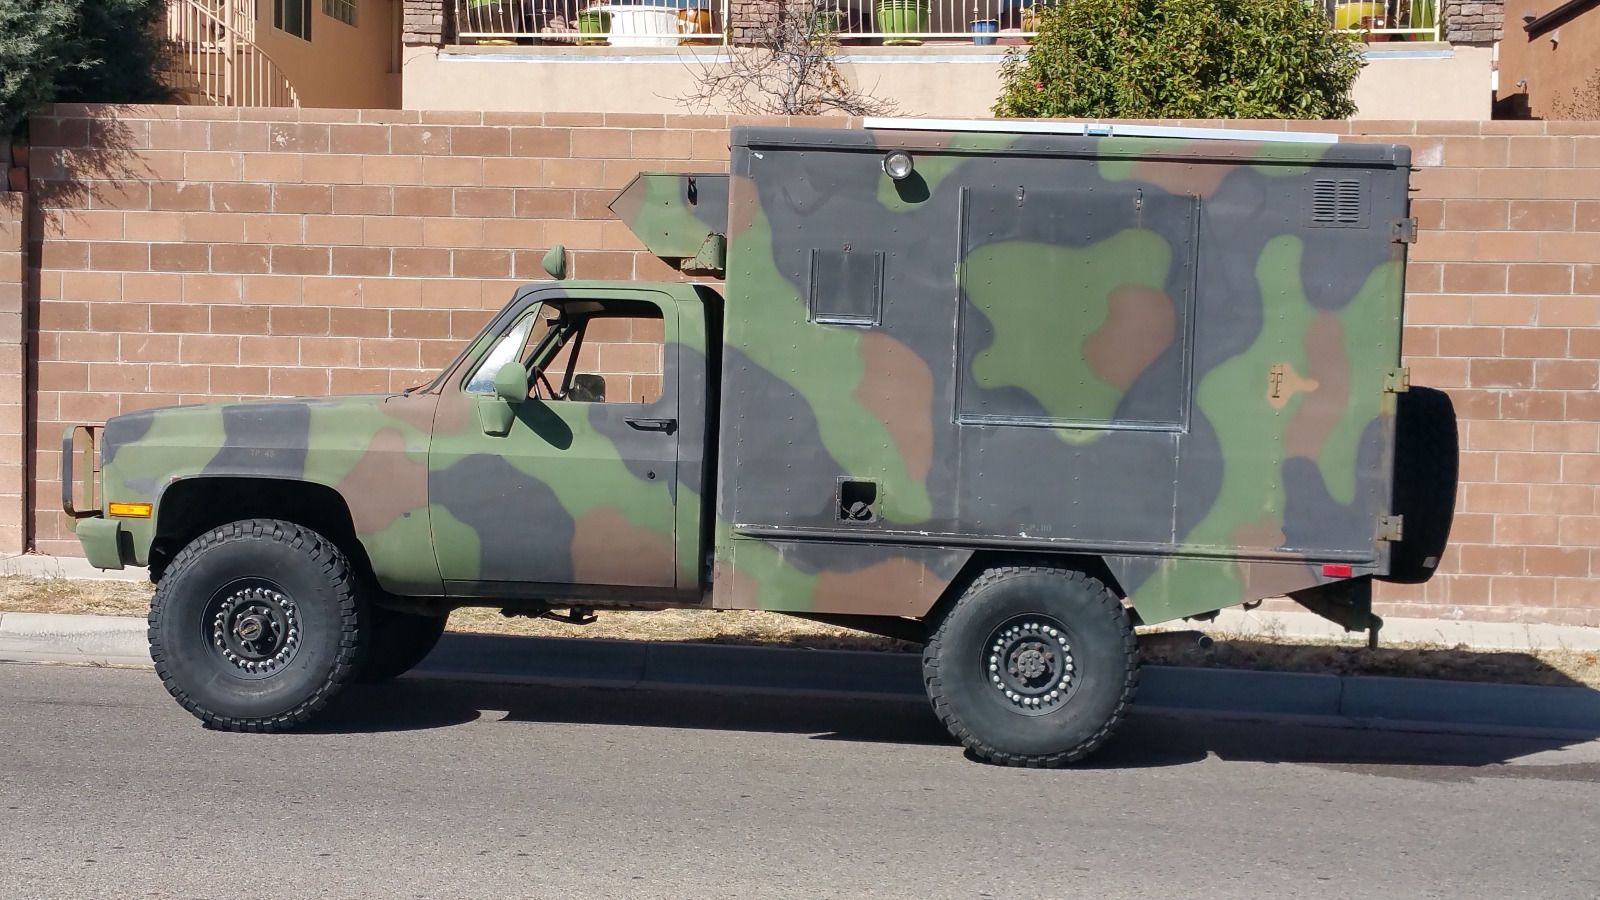 1985 chevrolet military cucv m1010 truck ambulance tactical 1 1 4